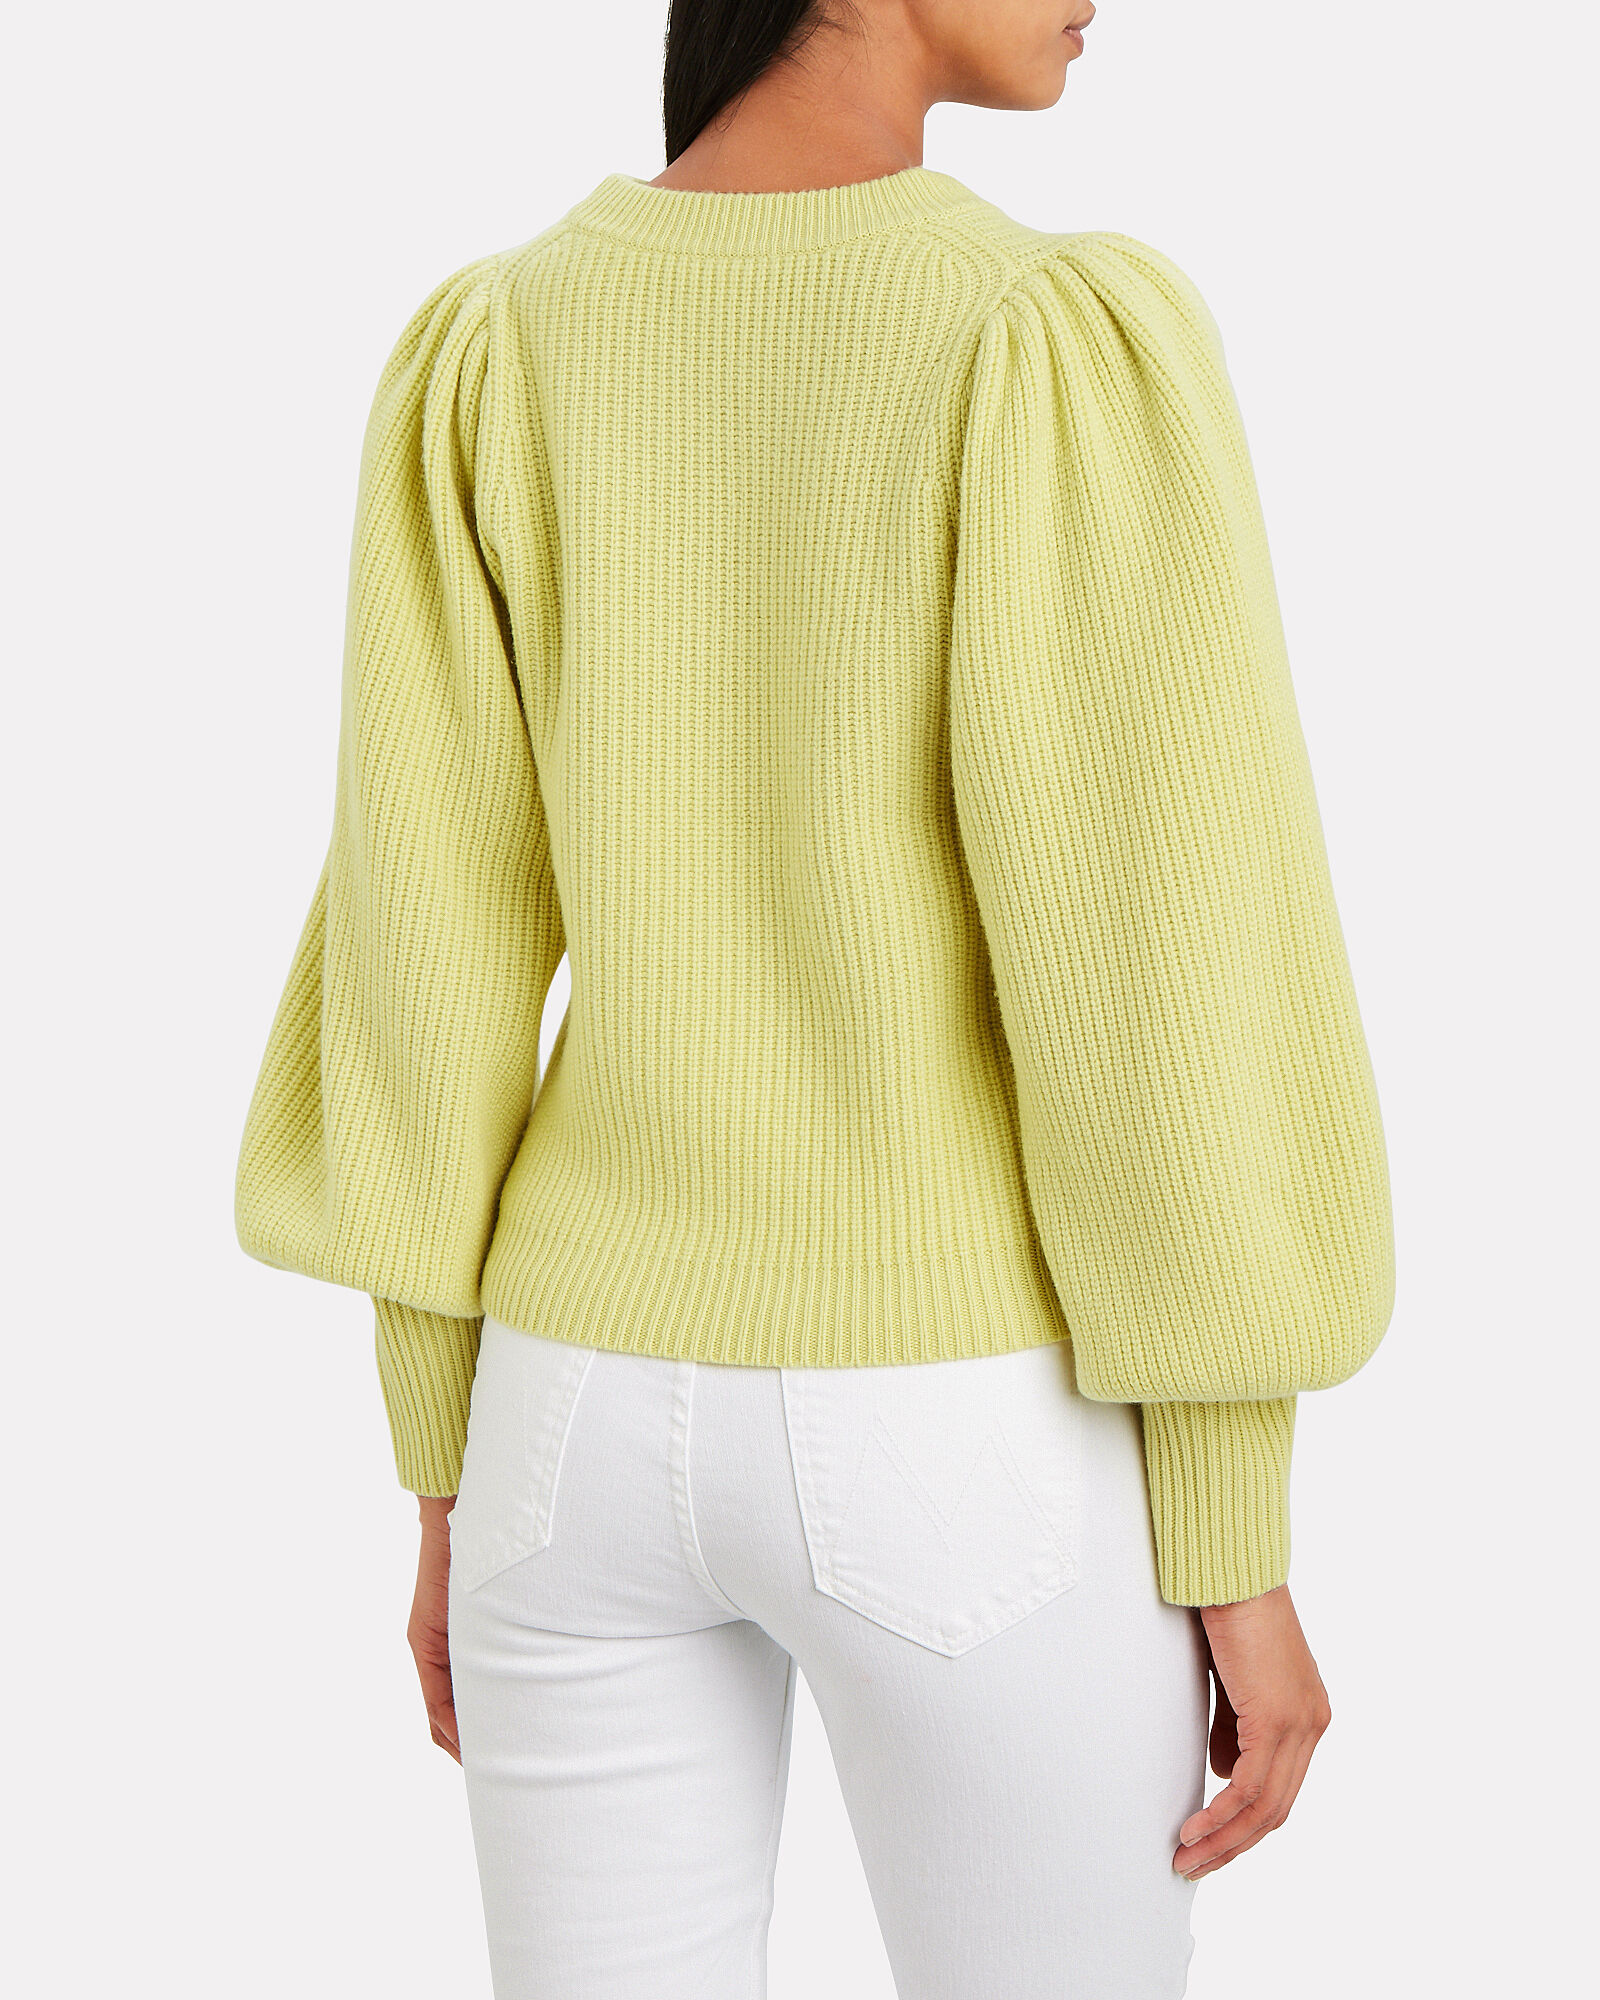 Eliana Puff Sleeve Cashmere-Blend Sweater, YELLOW, hi-res